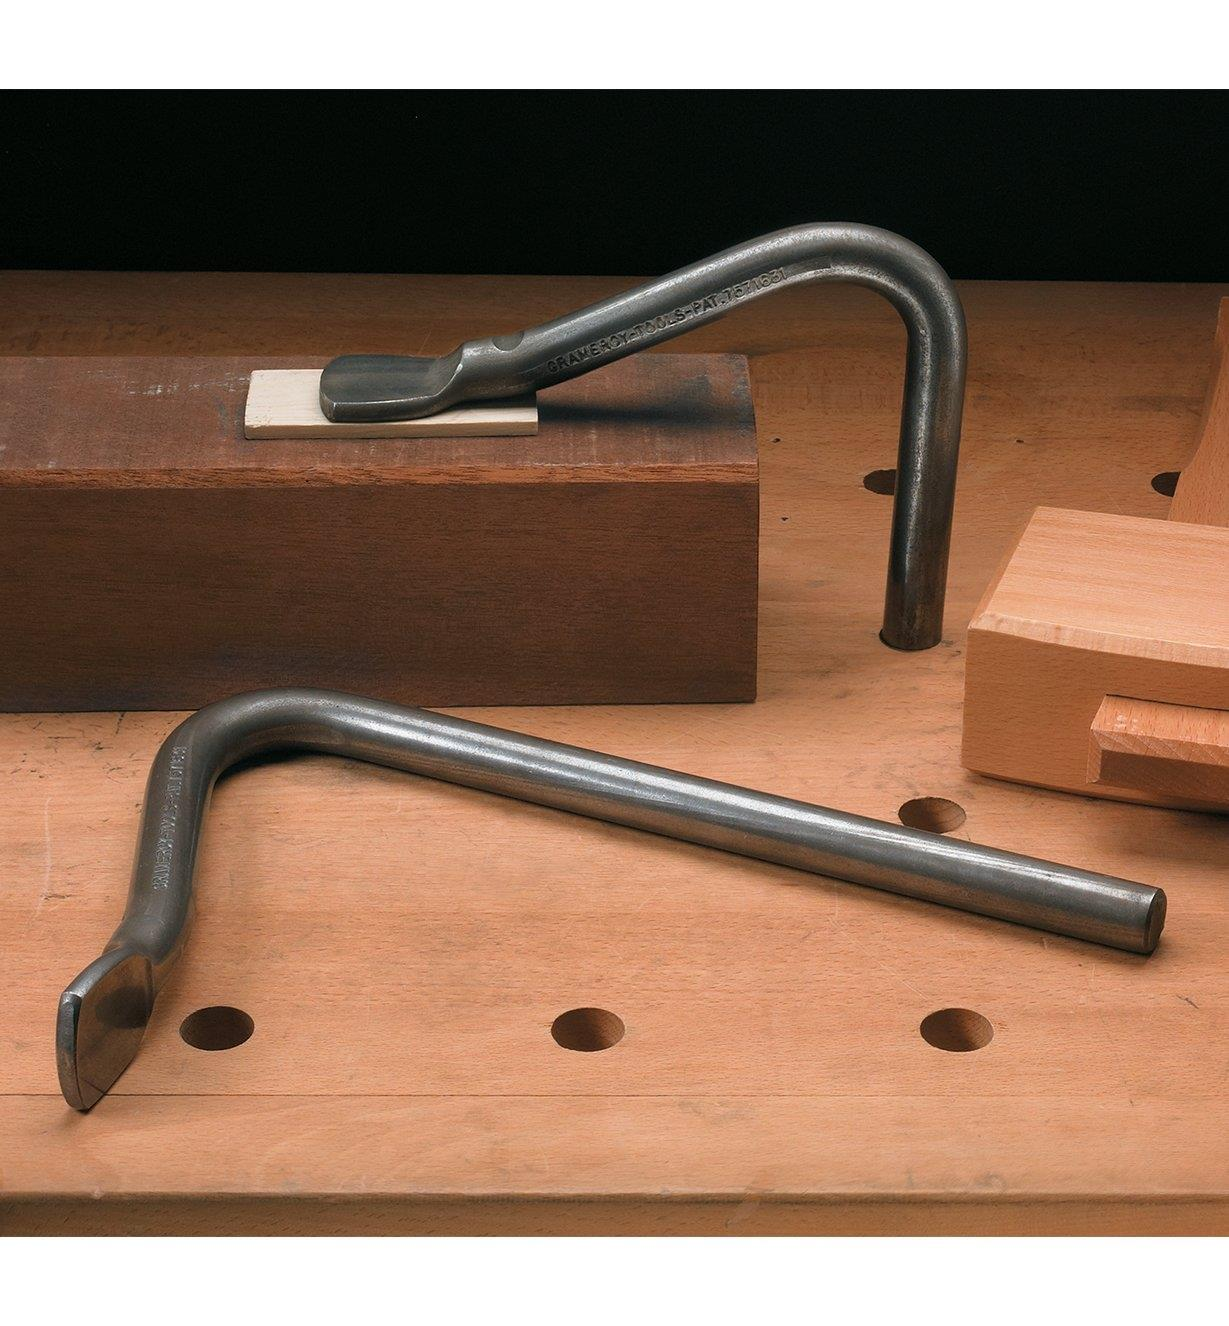 One holdfast lying on a workbench and the other inserted in a dog hole, holding a workpiece